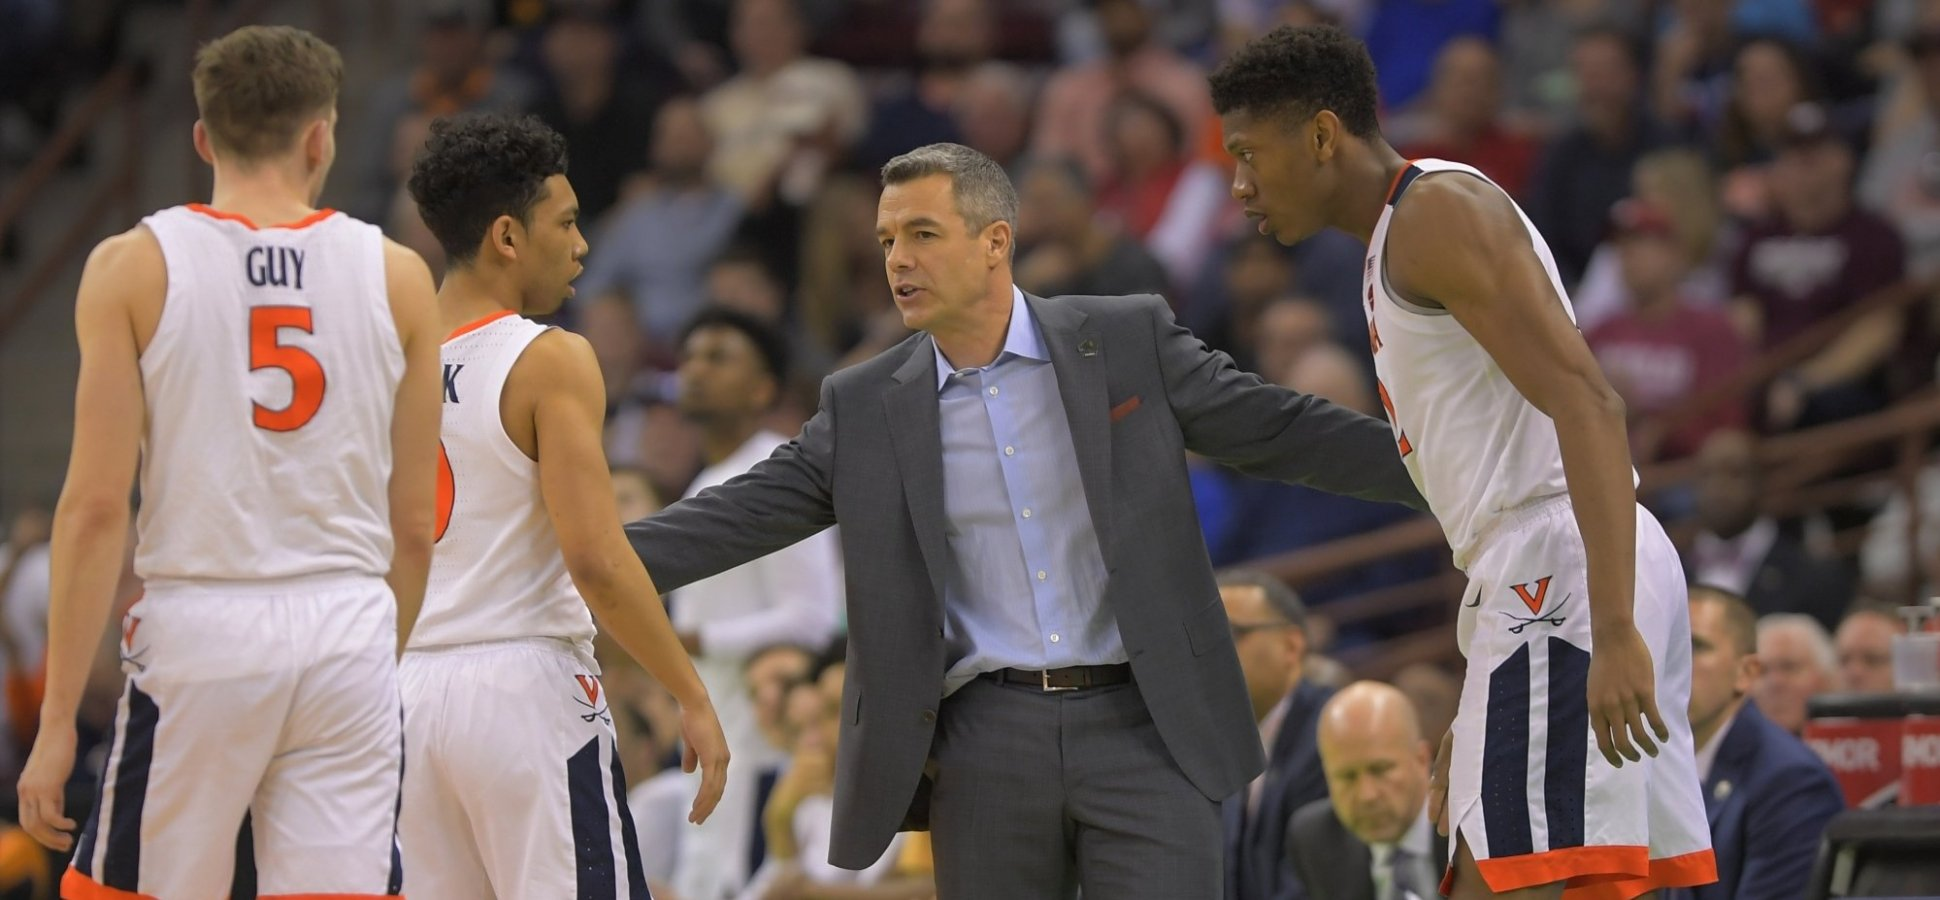 It Took Virginia Coach Tony Bennett 1 Sentence to Explain His Team's Amazing Comeback (and Teach a Major Lesson in Emotional Intelligence)